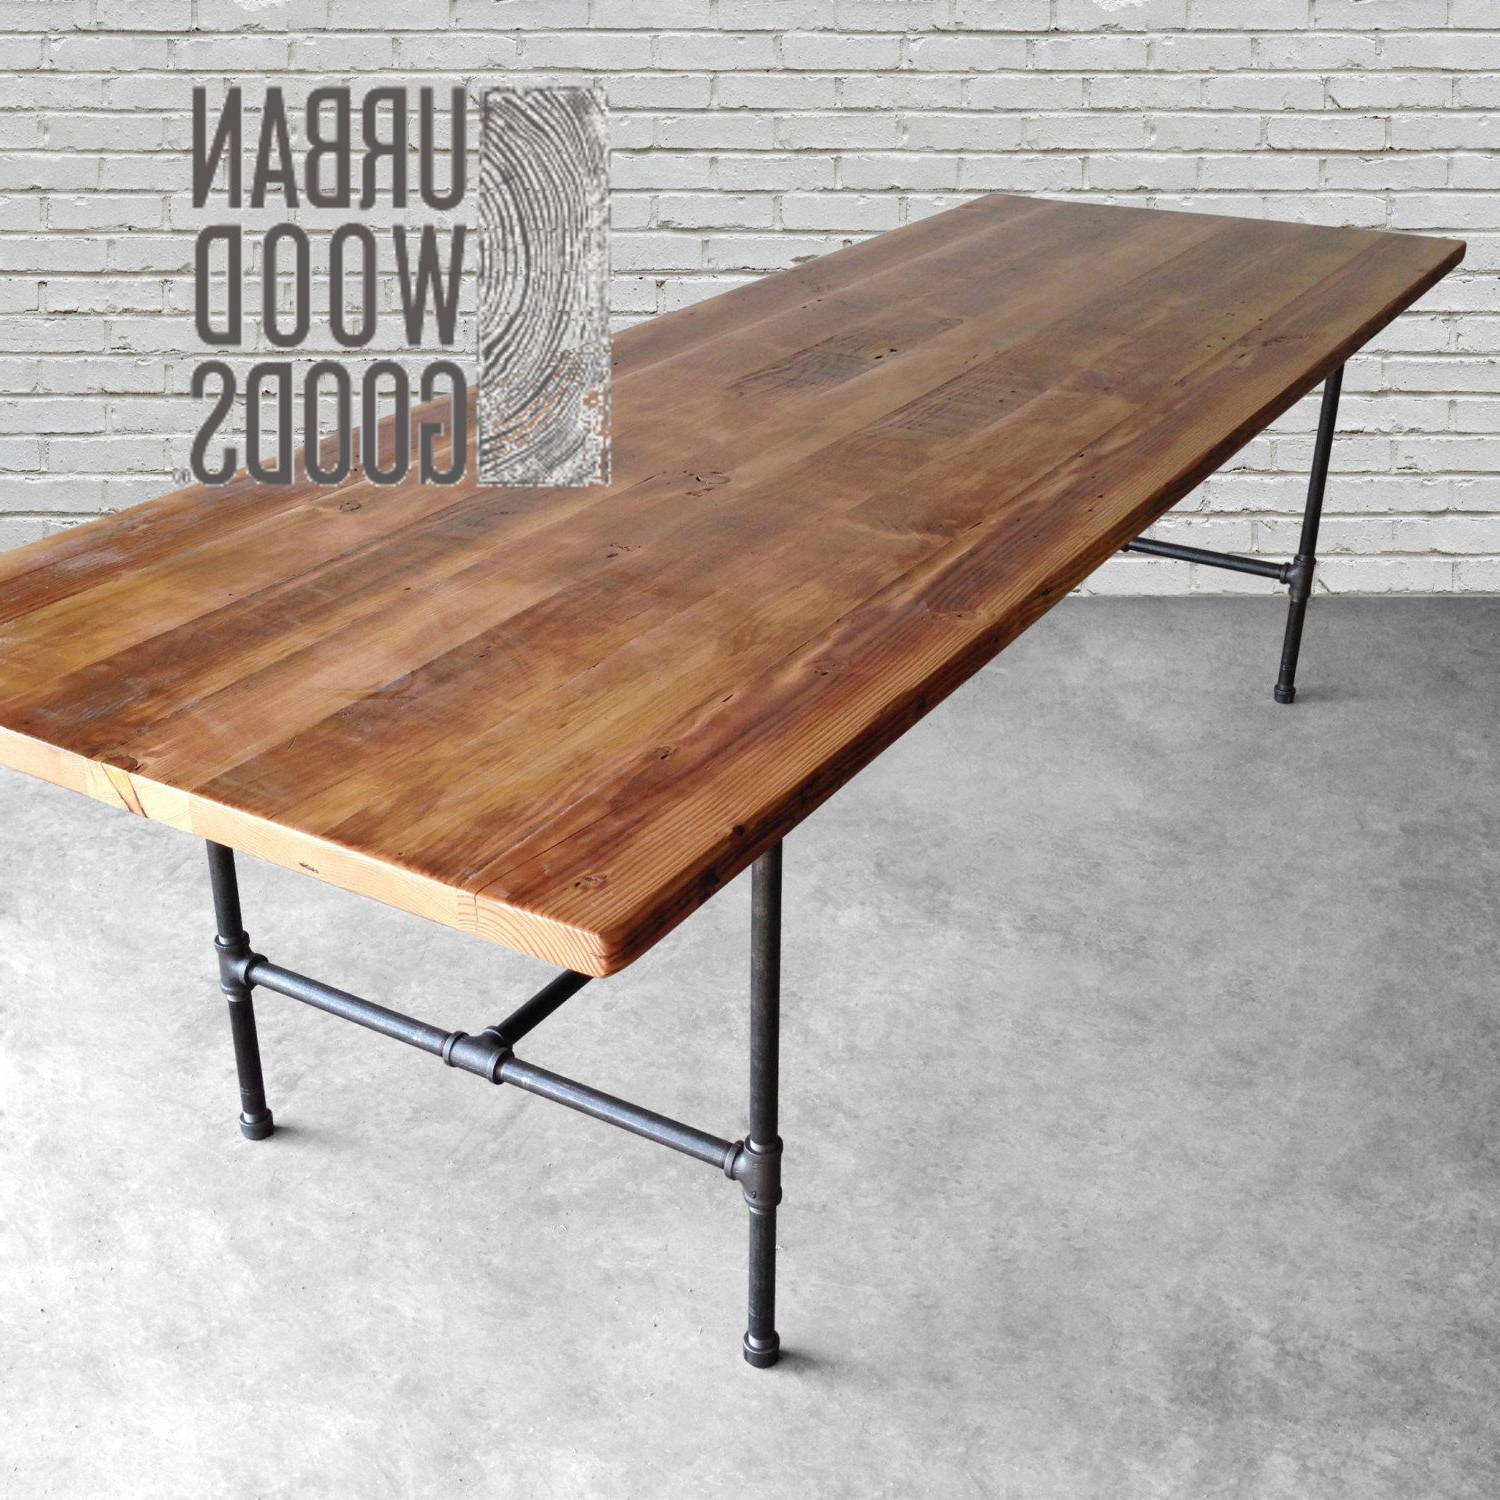 Iron Wood Dining Tables With Metal Legs Within Most Current Pin On Store (View 11 of 25)